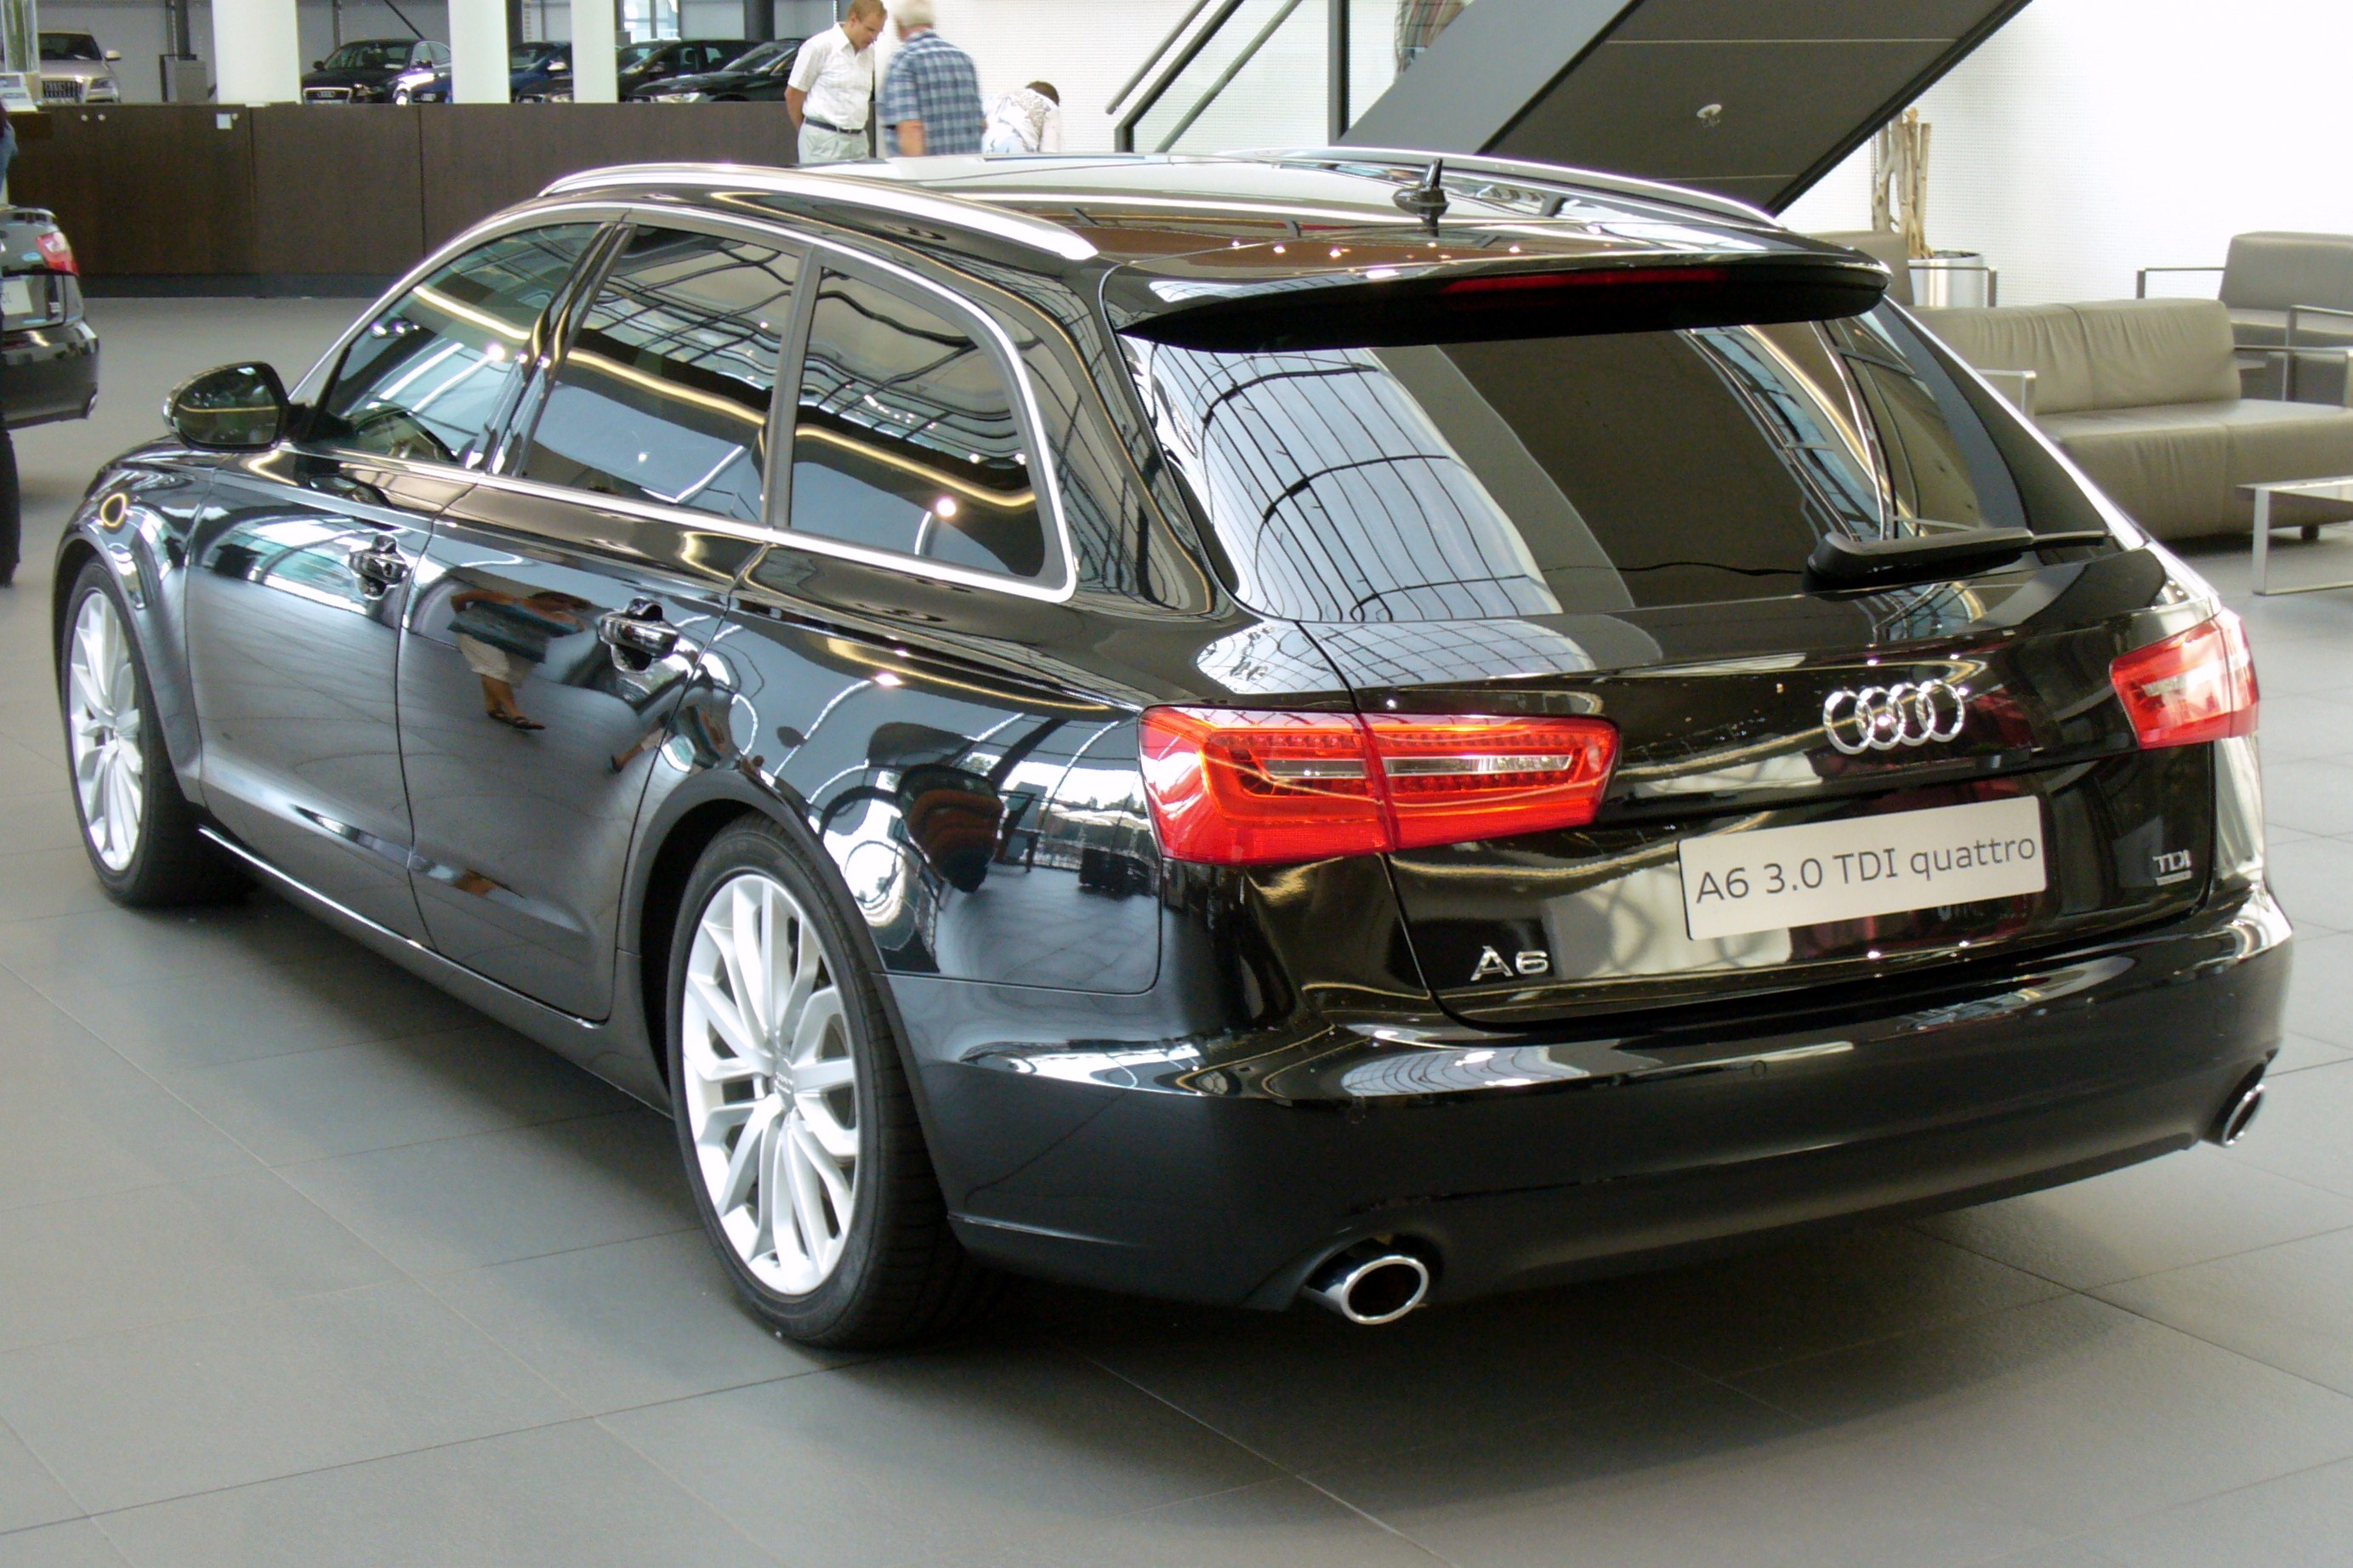 audi a6 avant tdi photos 14 on better parts ltd. Black Bedroom Furniture Sets. Home Design Ideas